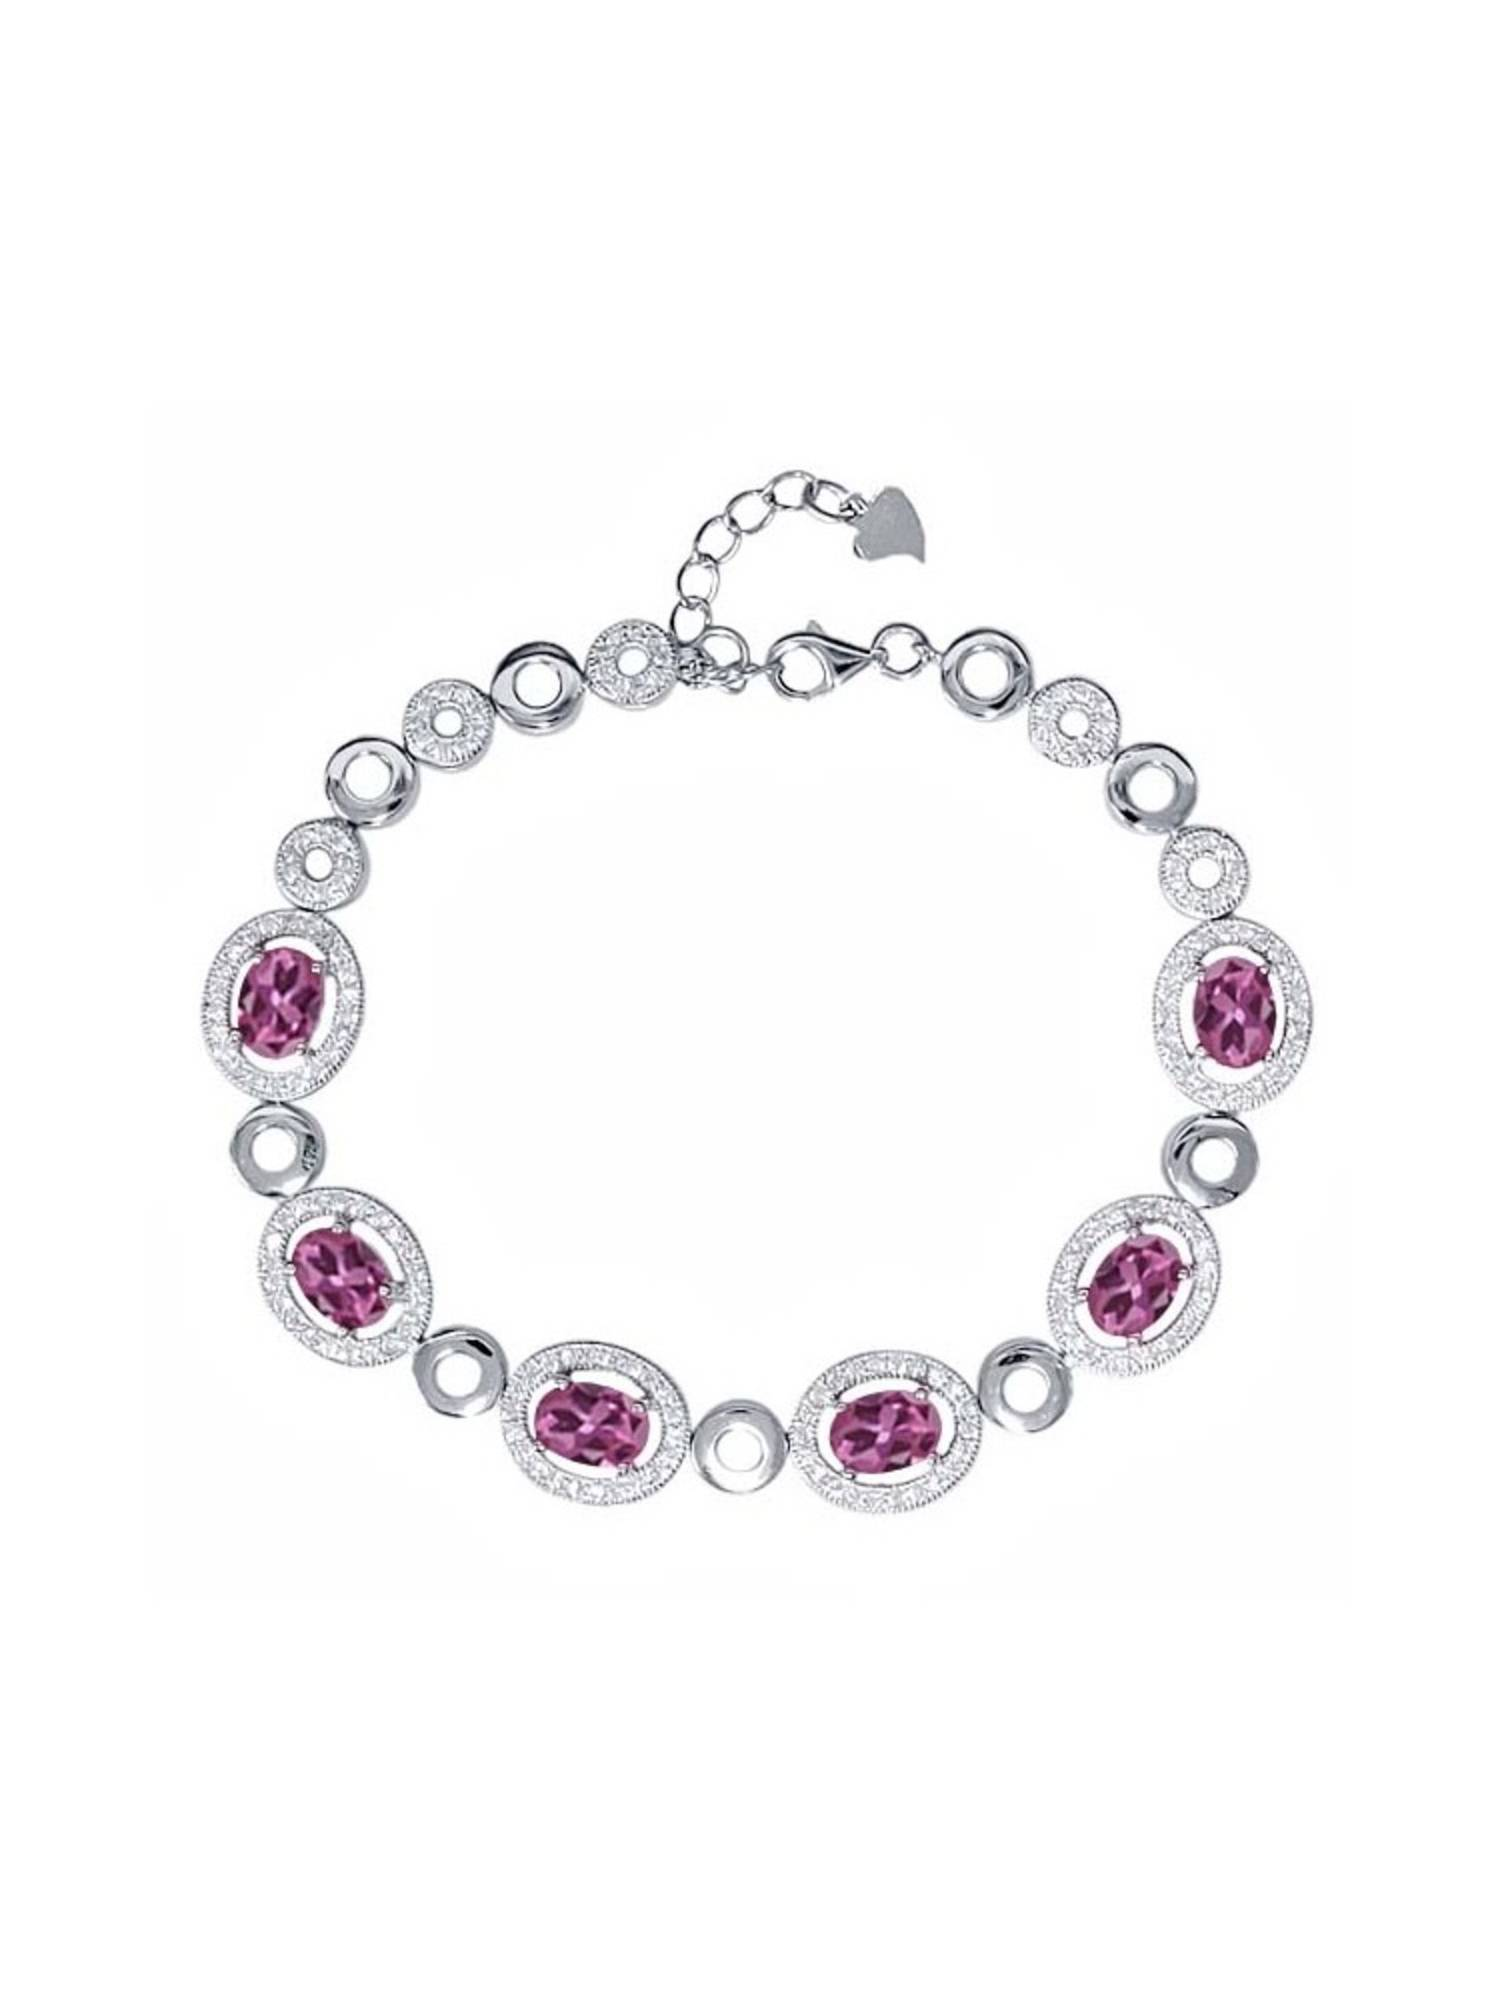 7.02 Ct Oval Pink Tourmaline 925 Sterling Silver Bracelet by Opal Pins